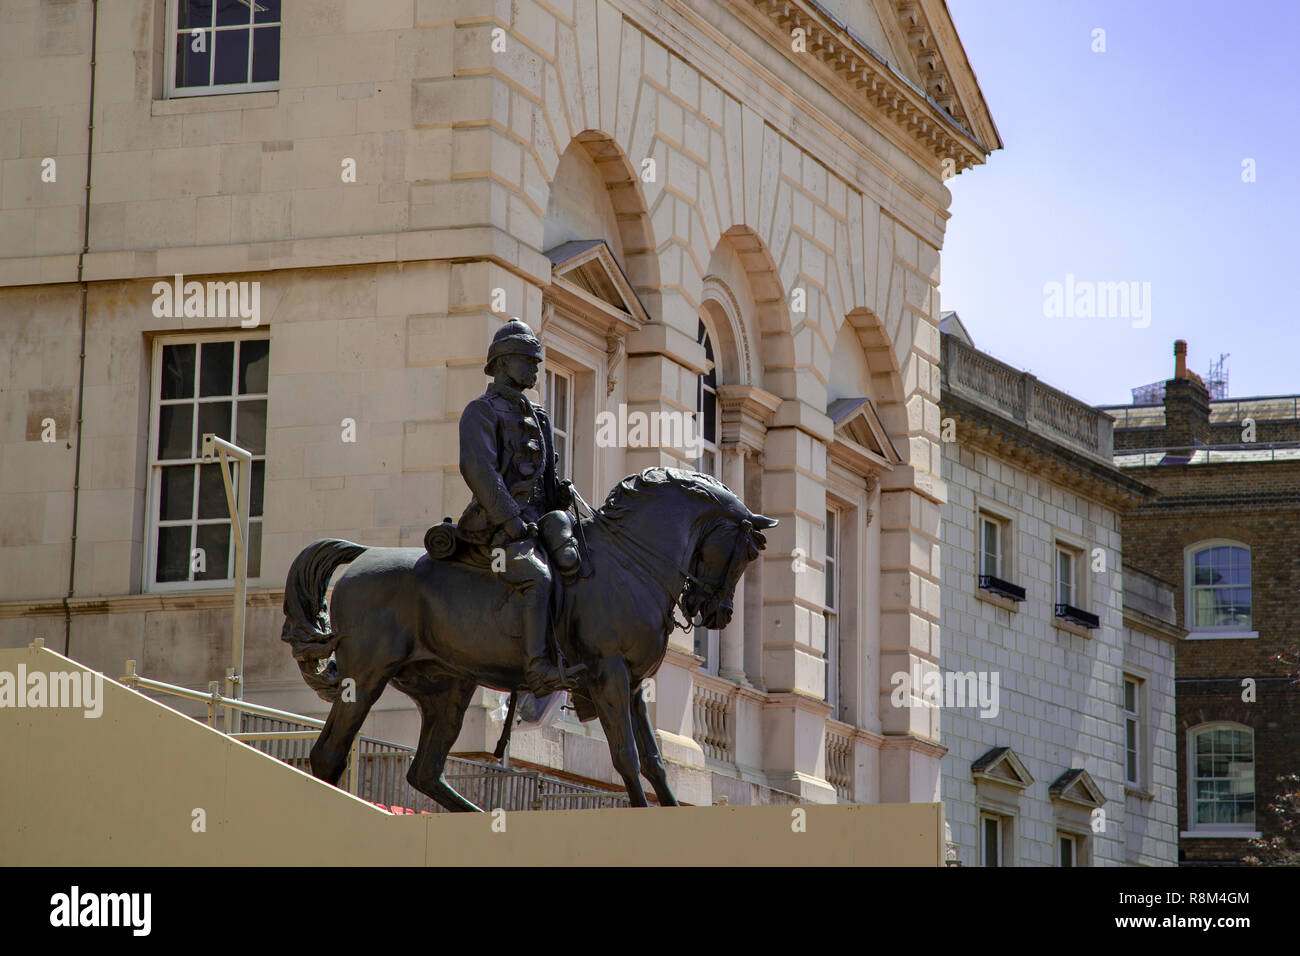 The statue of Earl Roberts (1832-1914) on Horse Guards Parade at Pall Mall in London, England - Stock Image